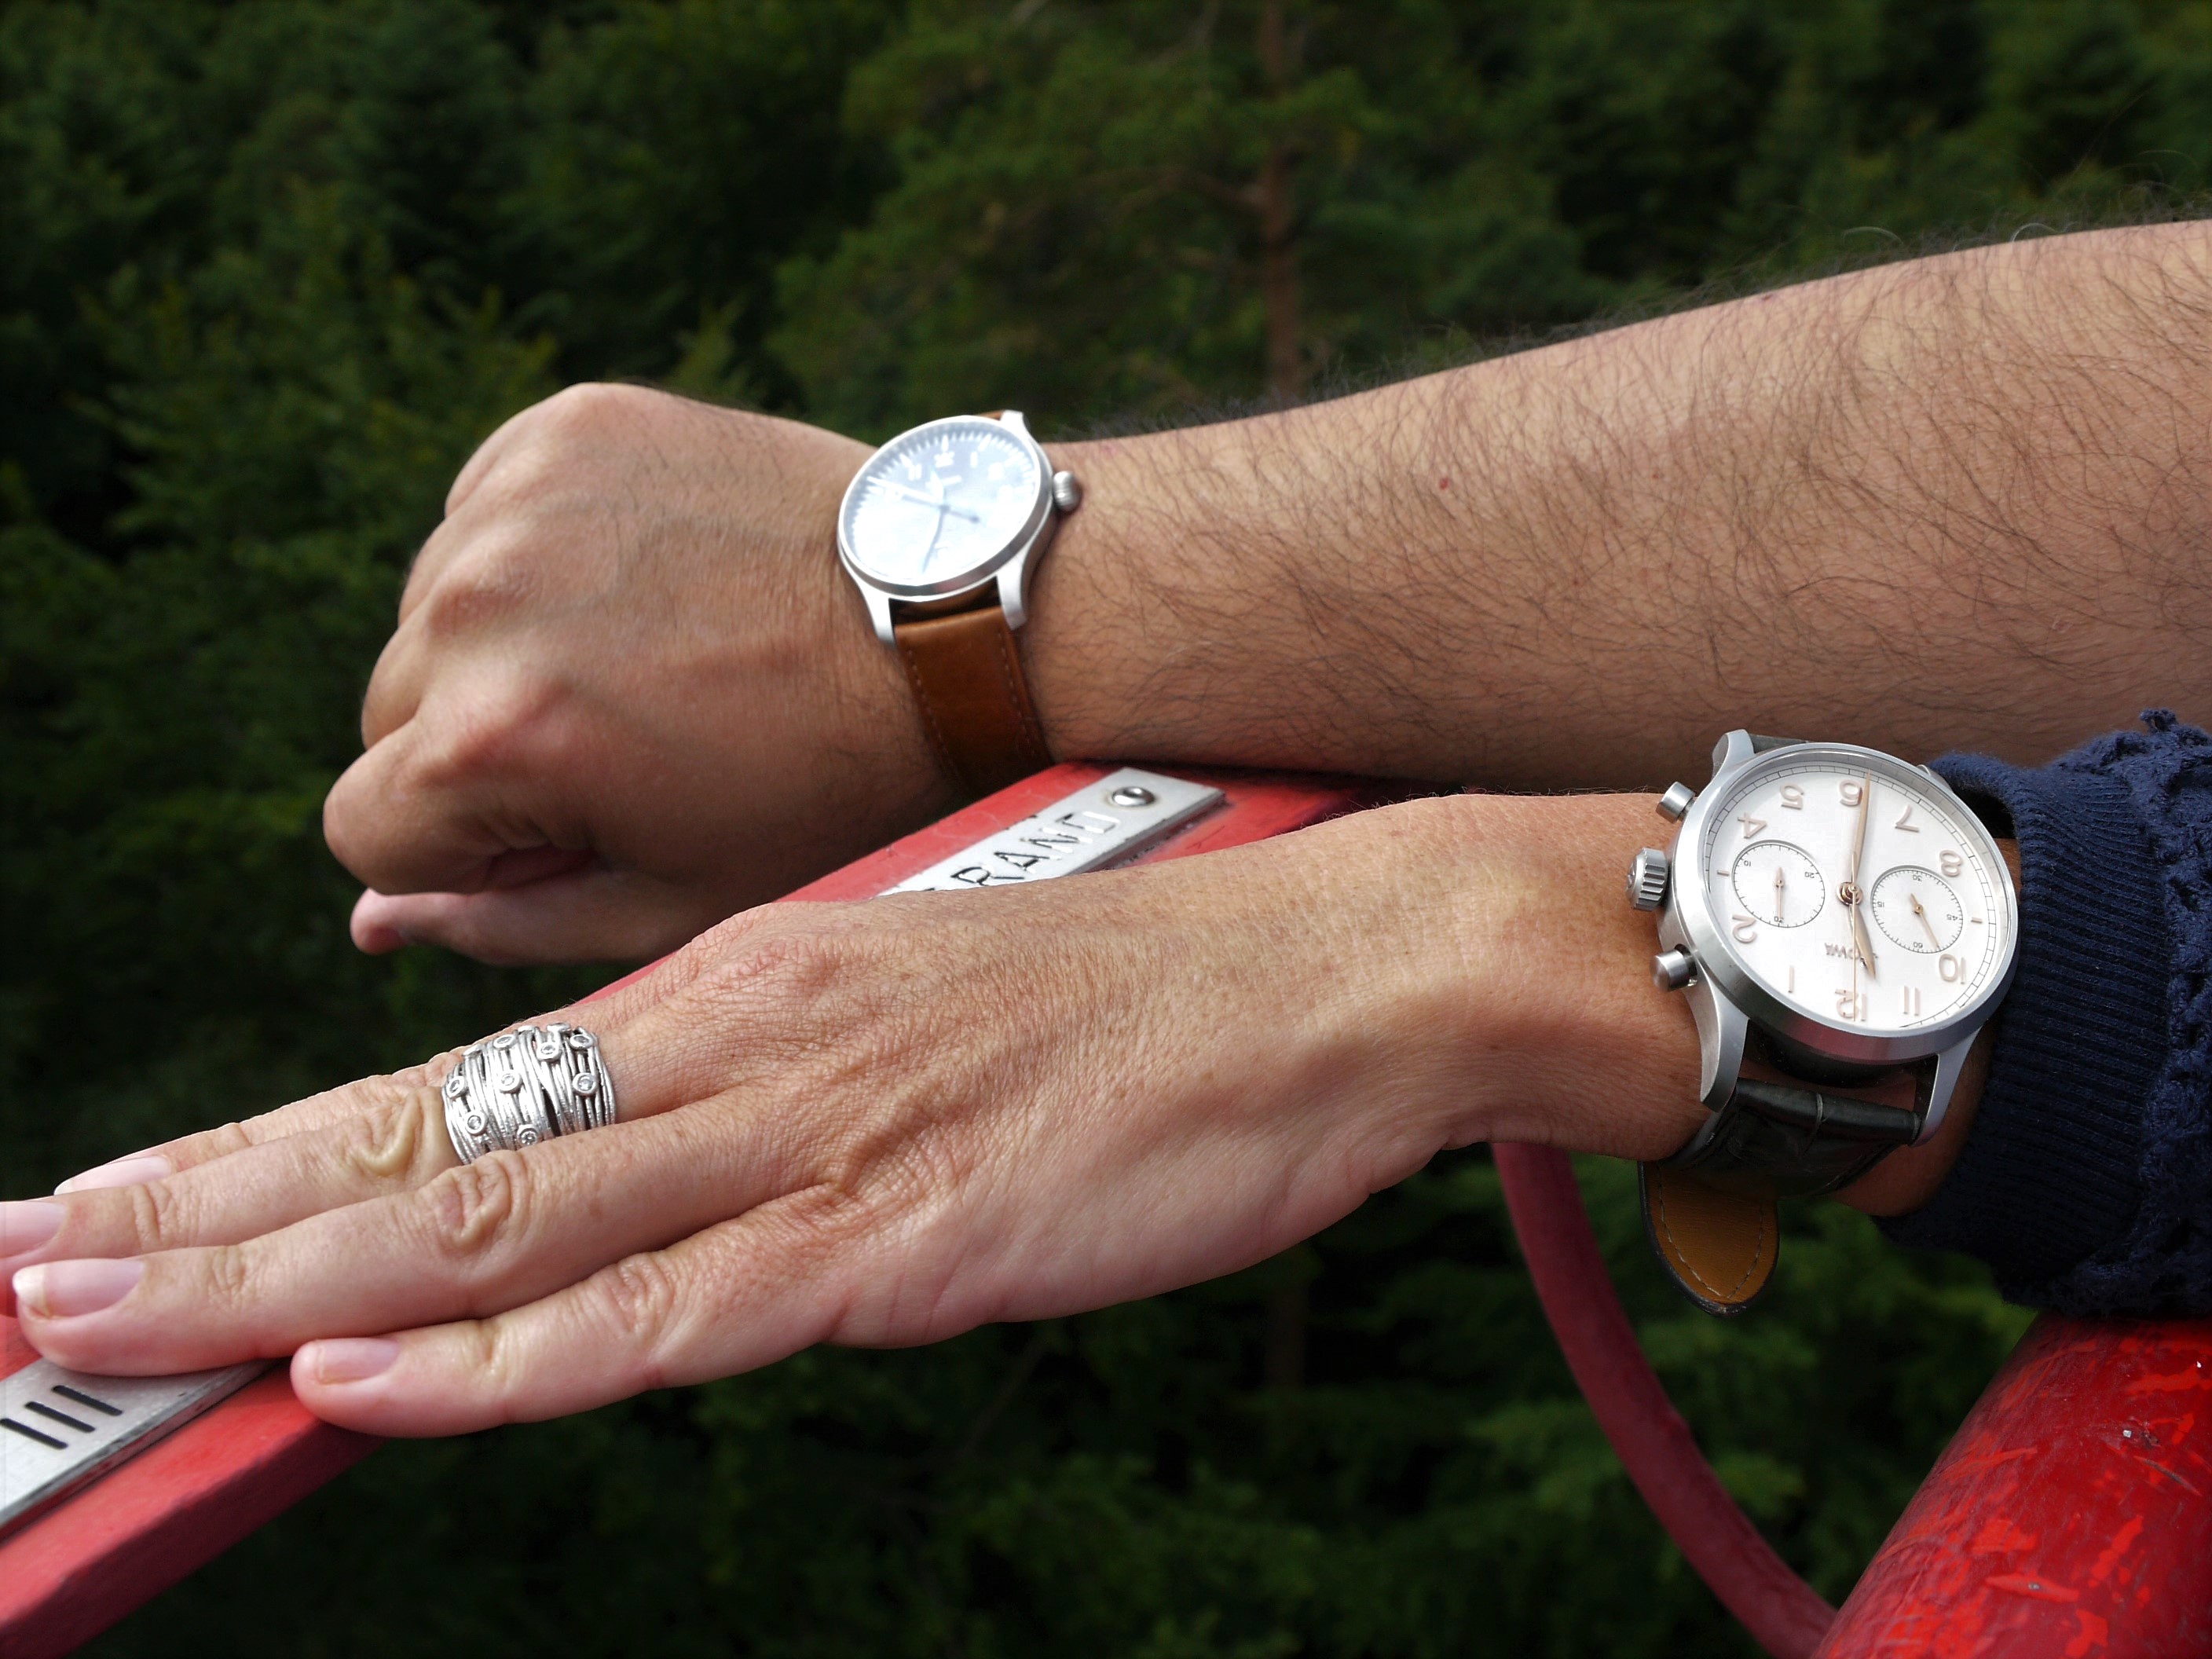 We did not miss any wristshot opportunity